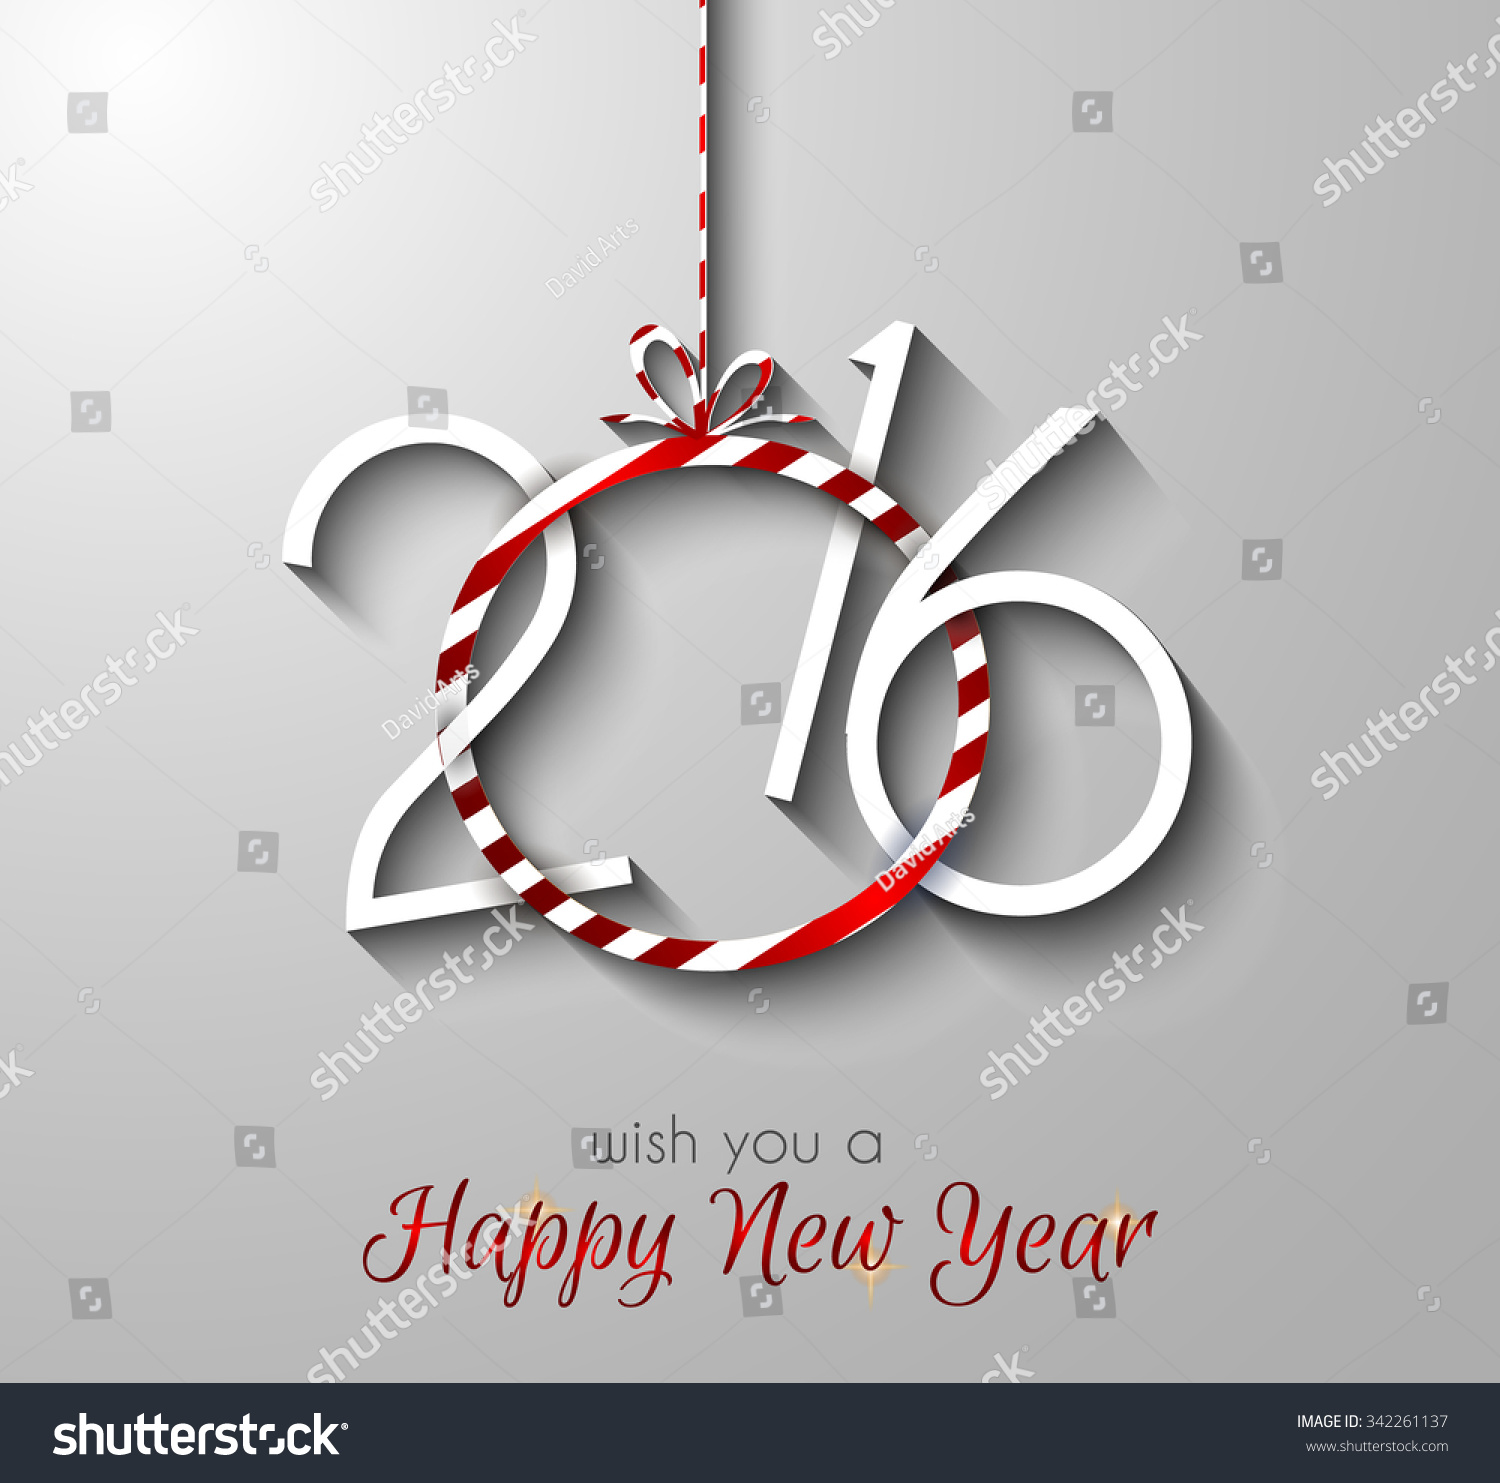 2016 Happy New Year Merry Christmas Stock Vector 342261137 ...